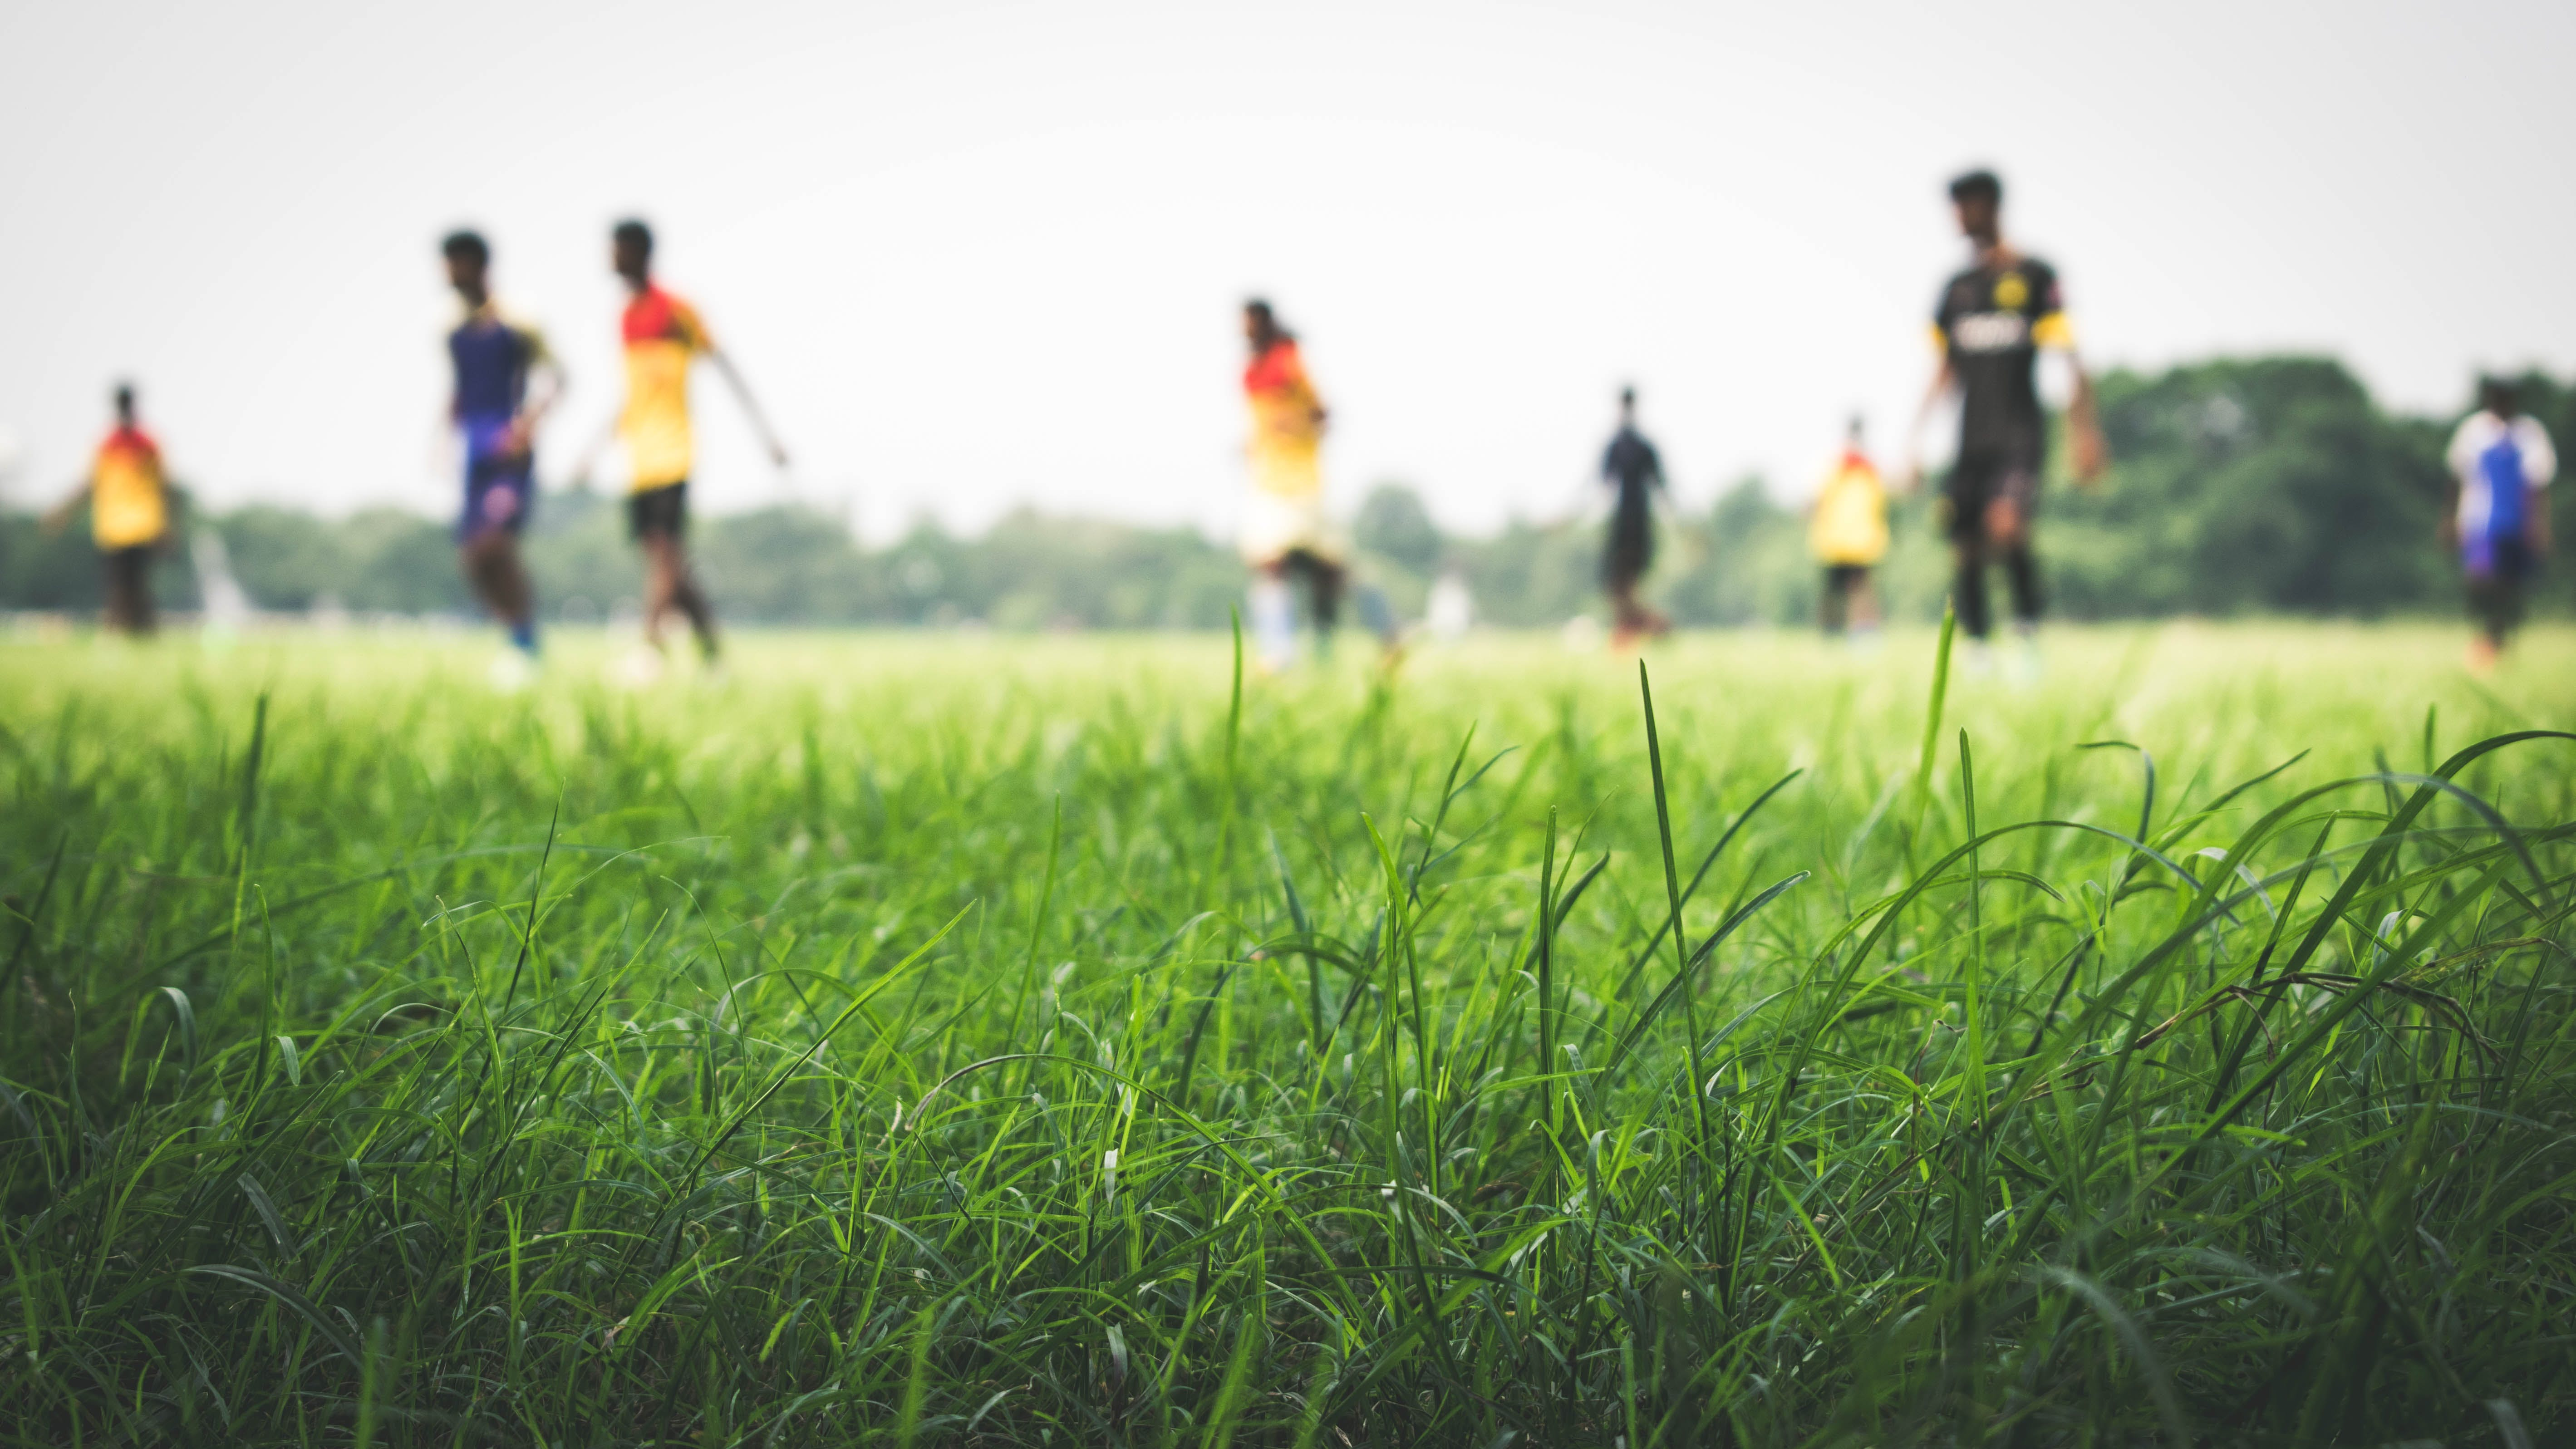 Free stock photo of field, football, football players, grass